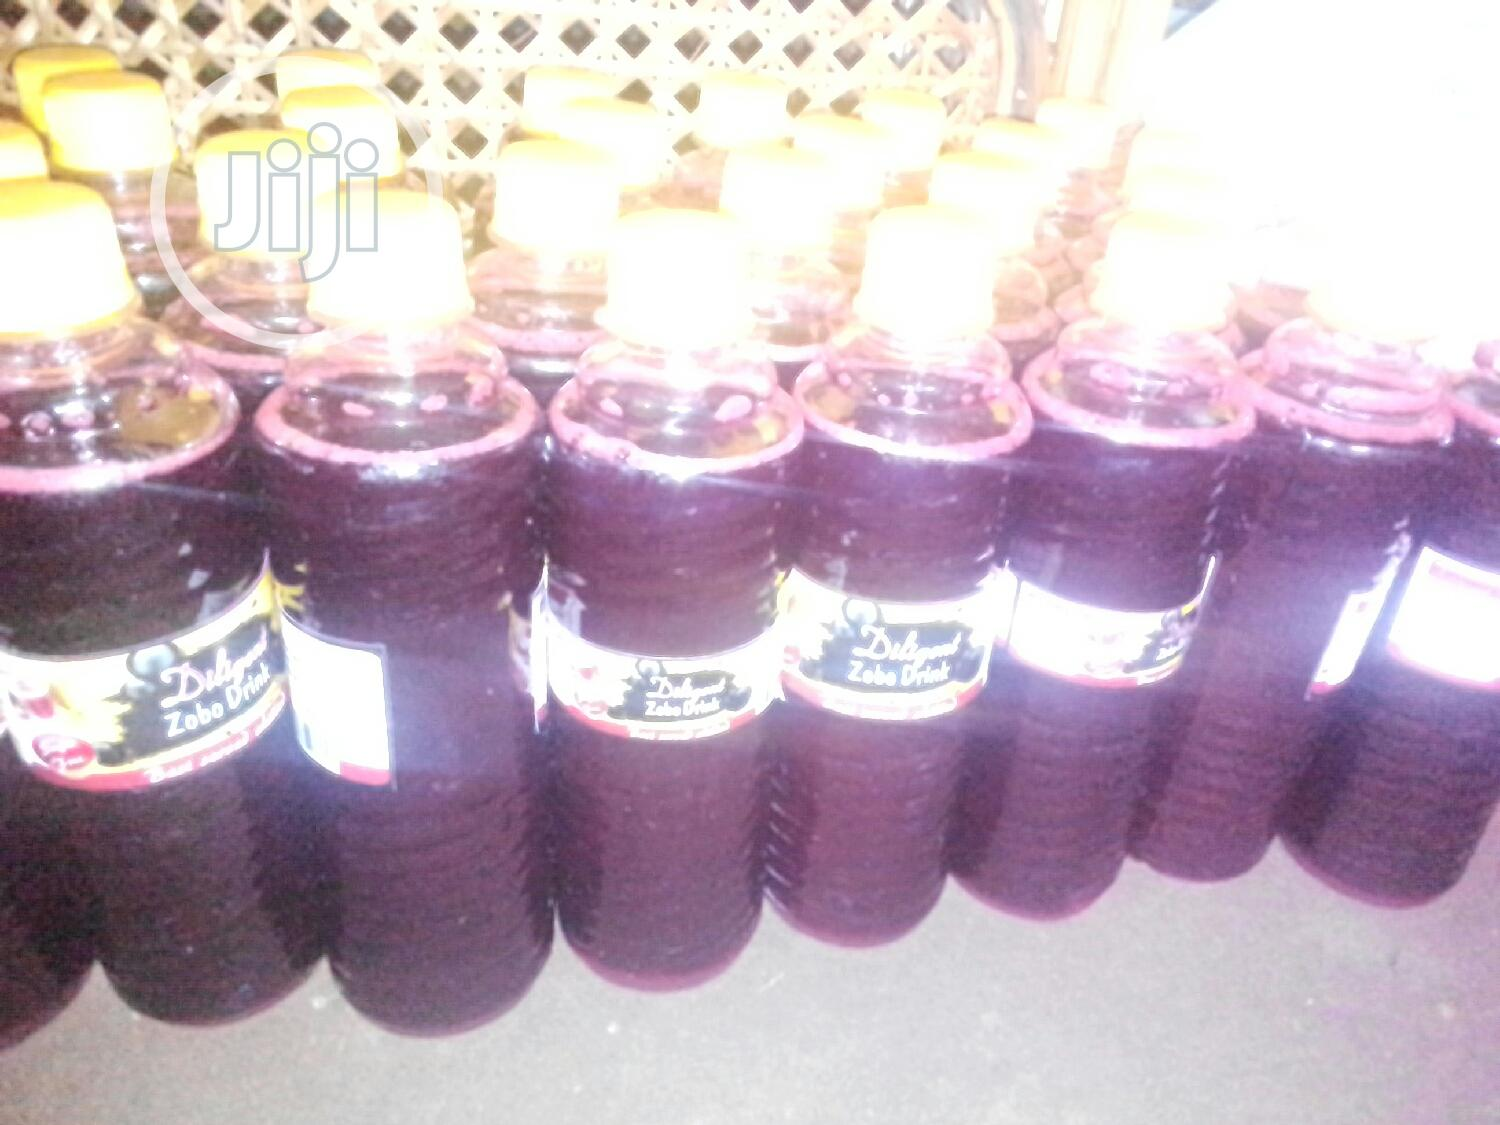 Zobo Drink With Natural Ingredients (We Deliver To All Location) | Meals & Drinks for sale in Yaba, Lagos State, Nigeria